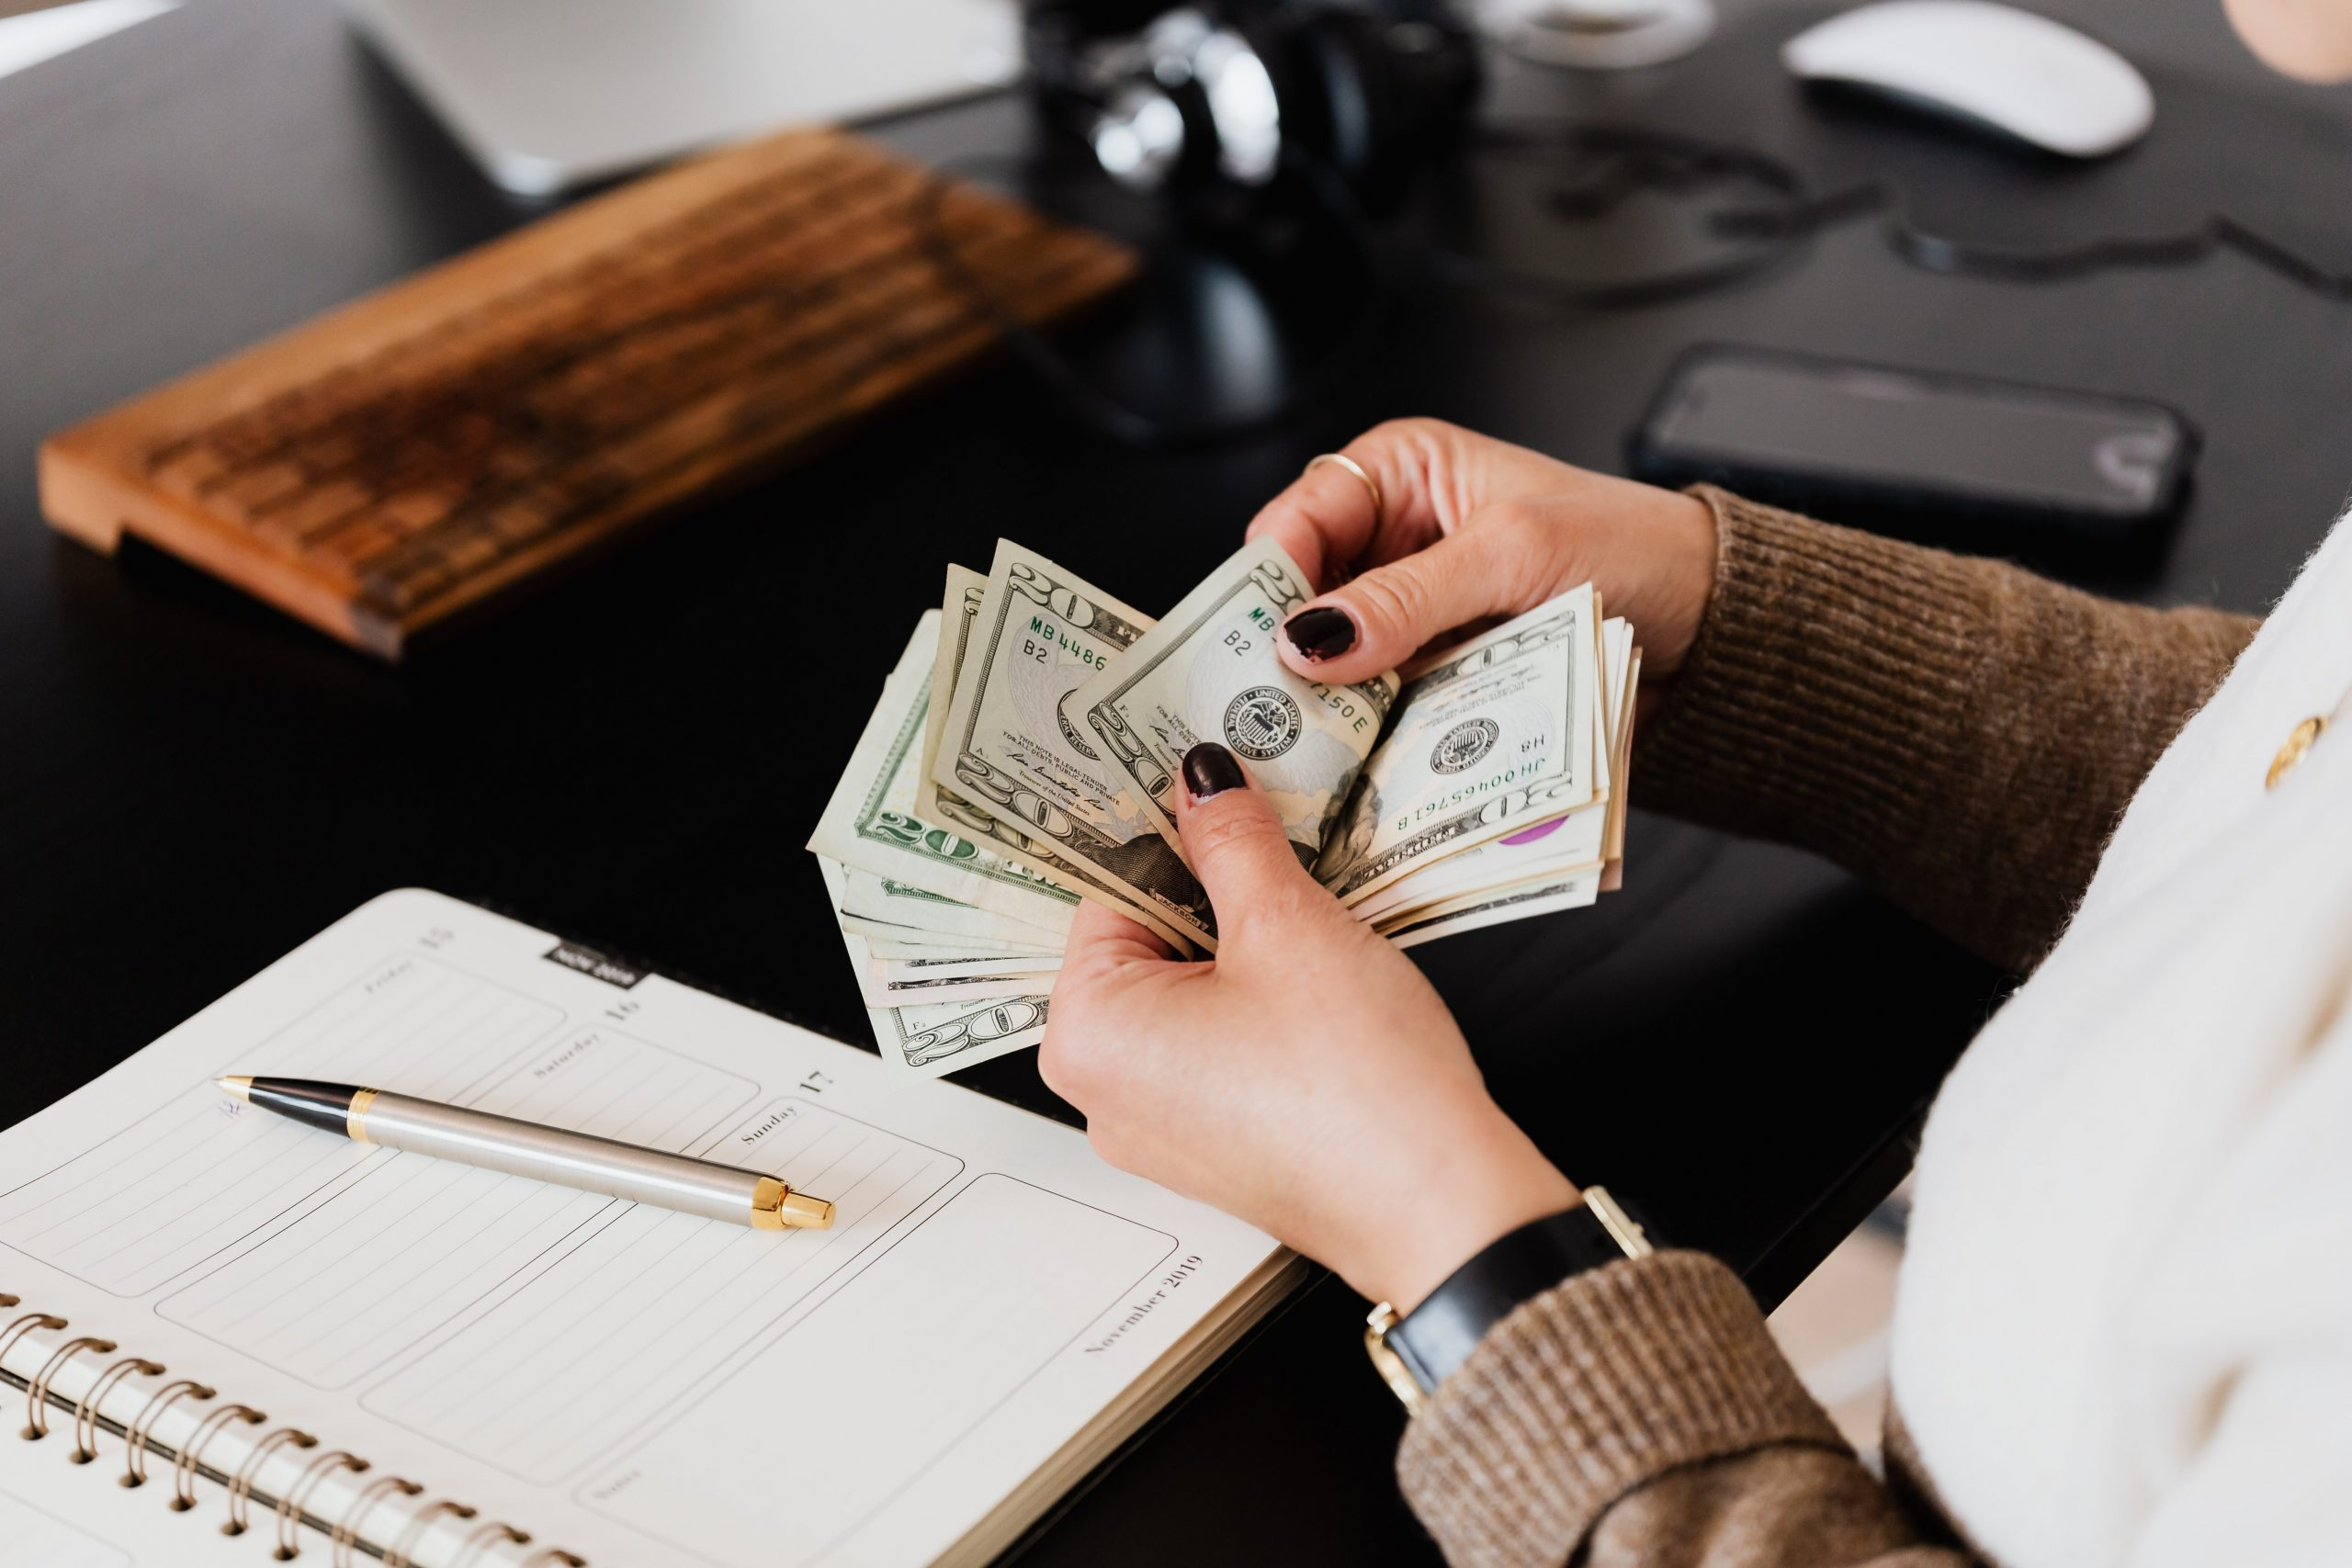 Money being prepared for fast approval loan